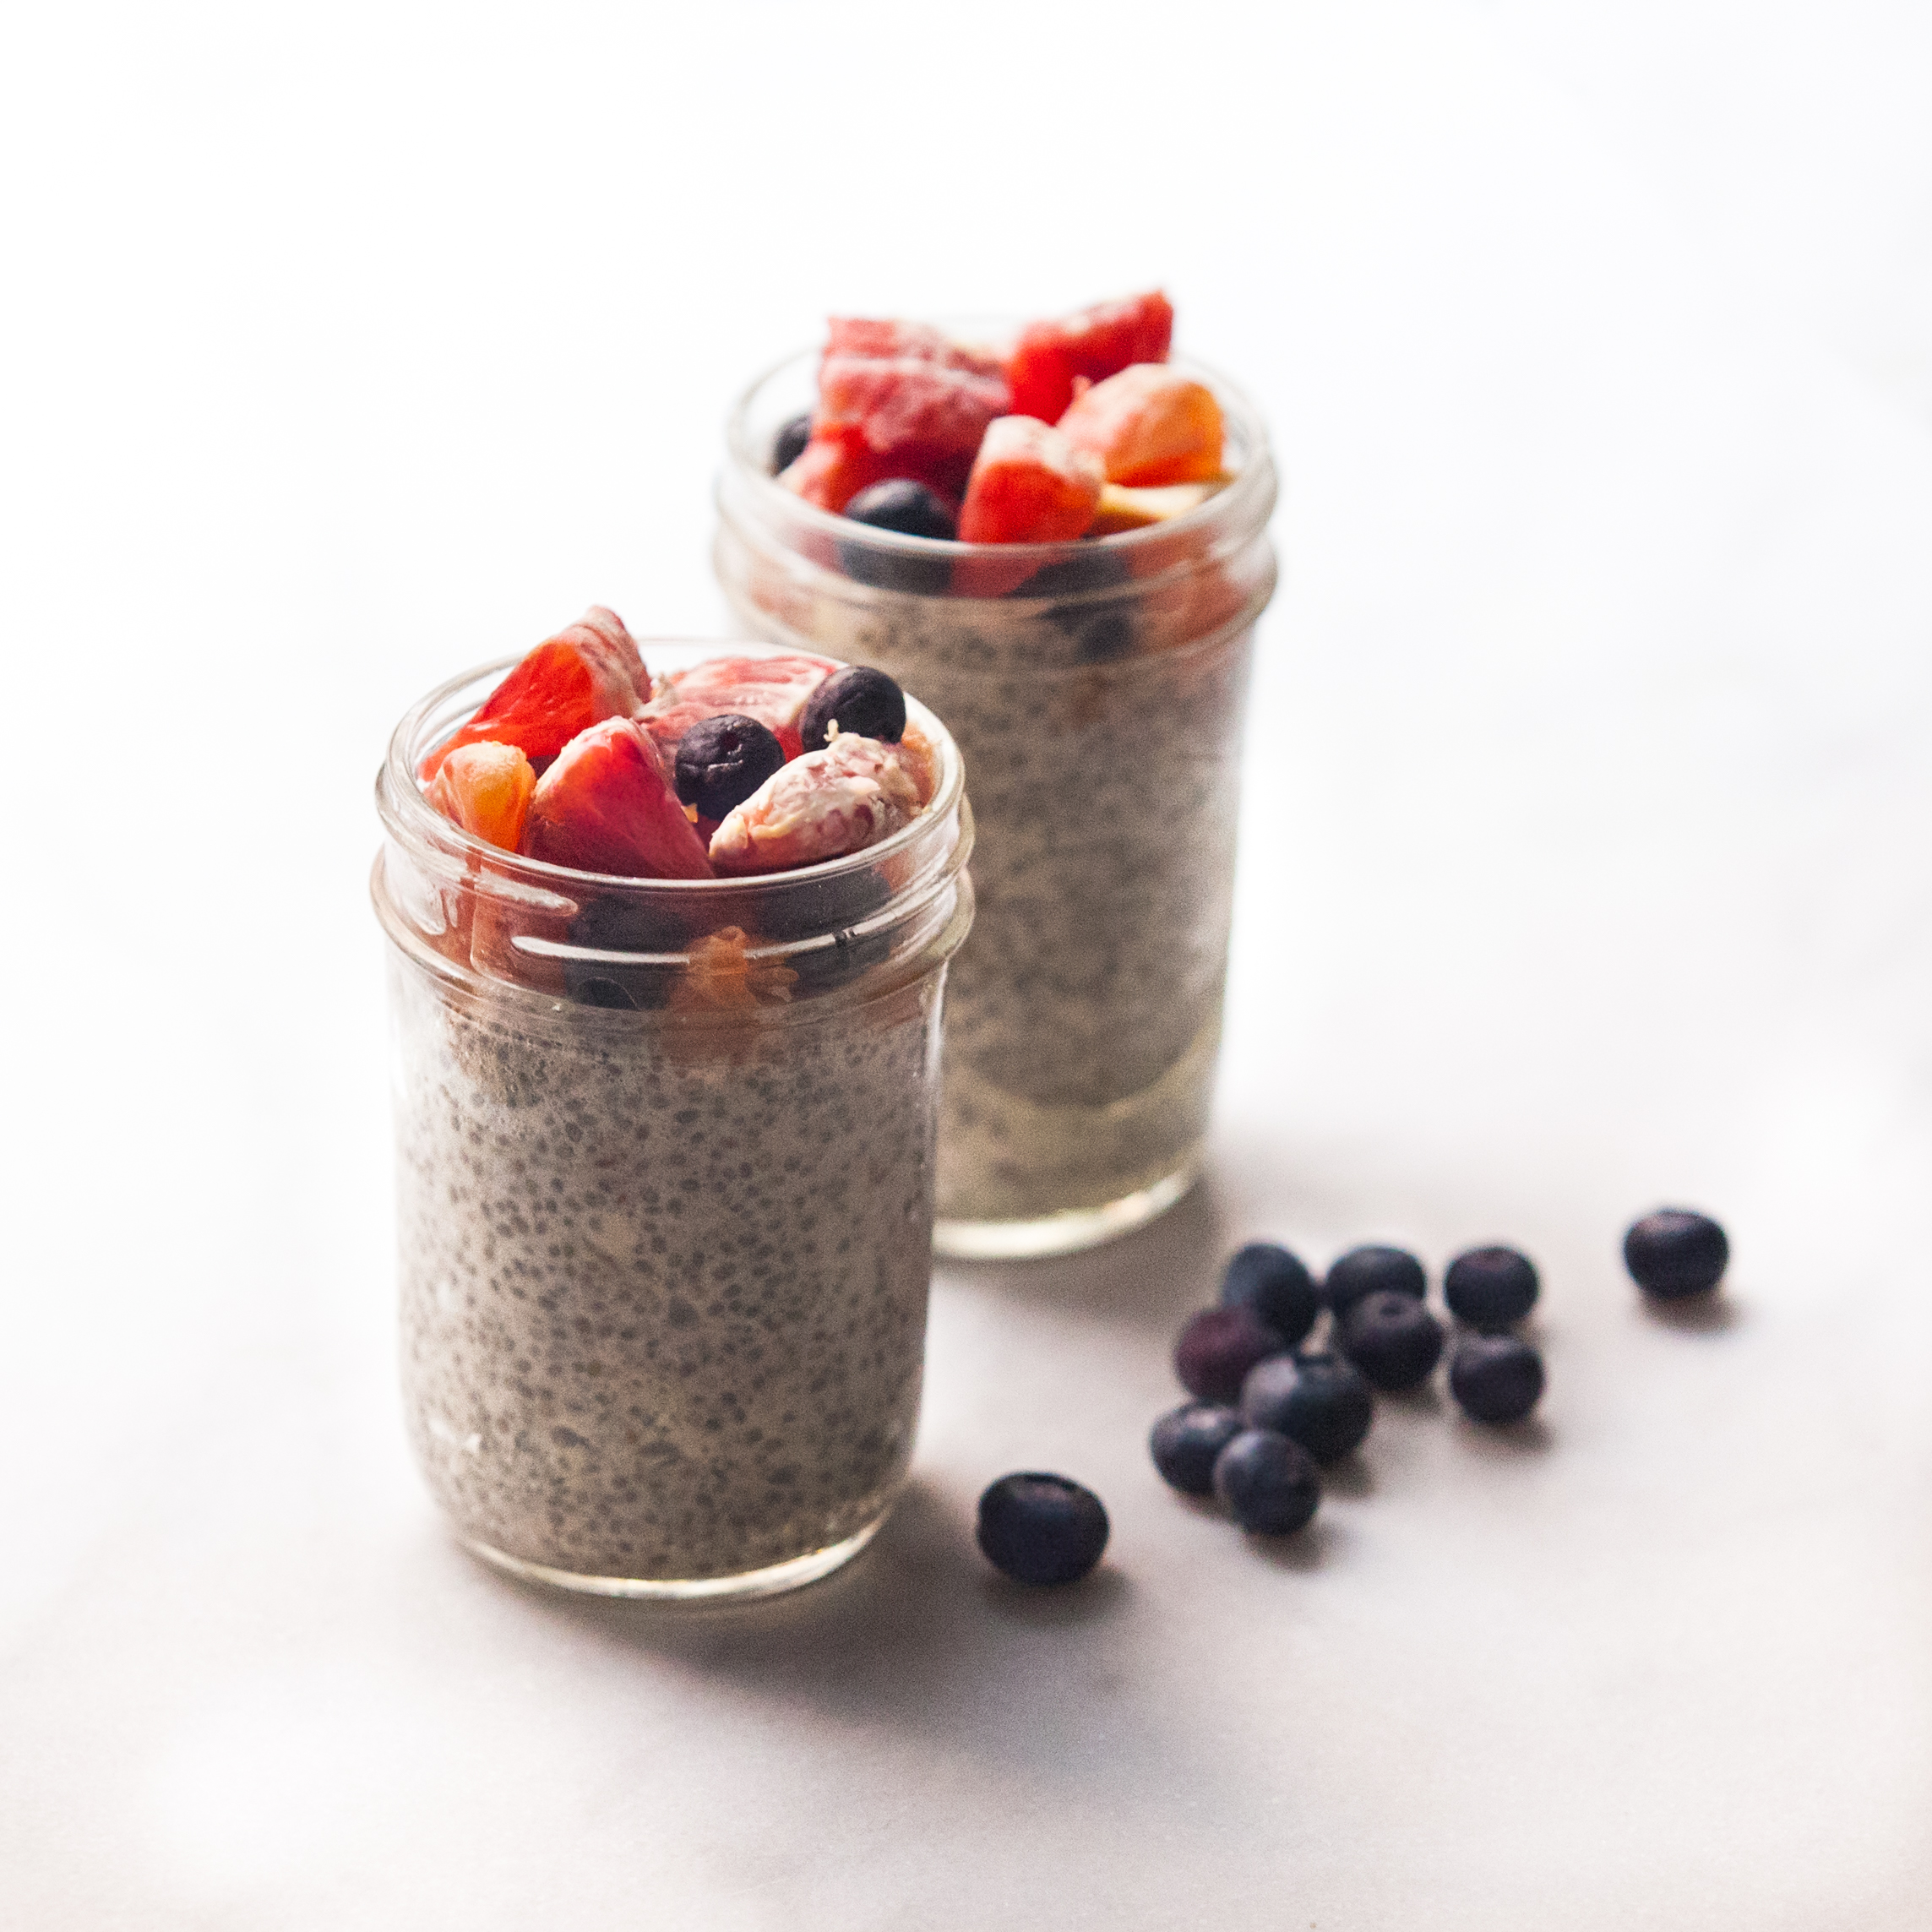 Cinnamon Grass Fed Collagen Protein Chia Seed Pudding